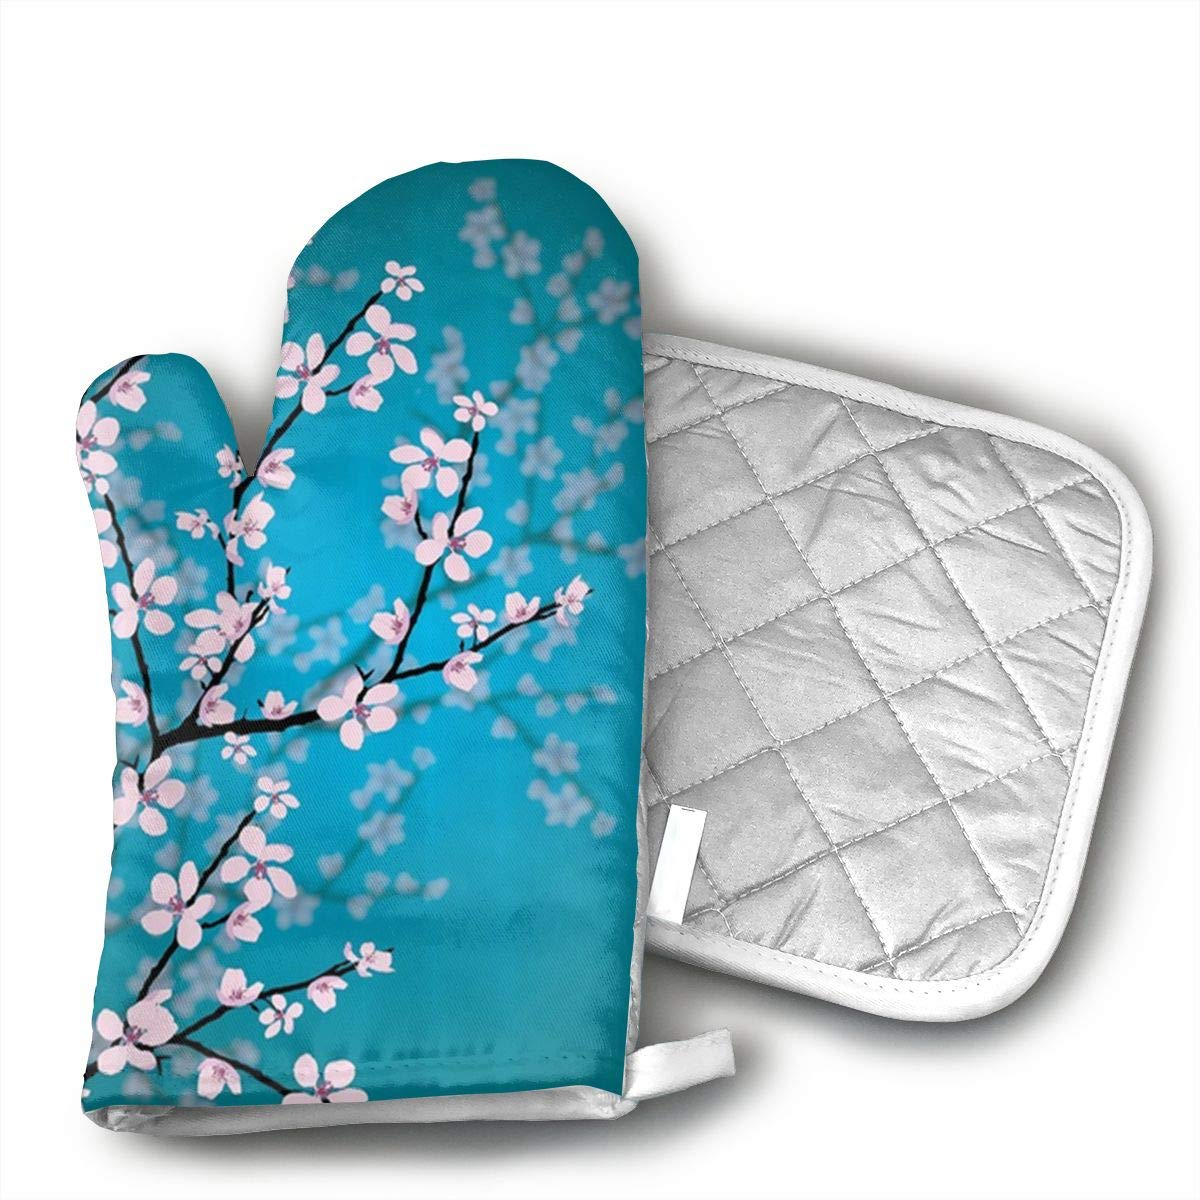 Unisex Oven Mitt and Pot Holder for Teal Shower Curtain Pink Blossoms Decor,Leaves and Plants Ombre Spring Japanese Sakura Flowers in Garden Park, Fabric Bathroom Decorations, with Hooks - 2 Pair